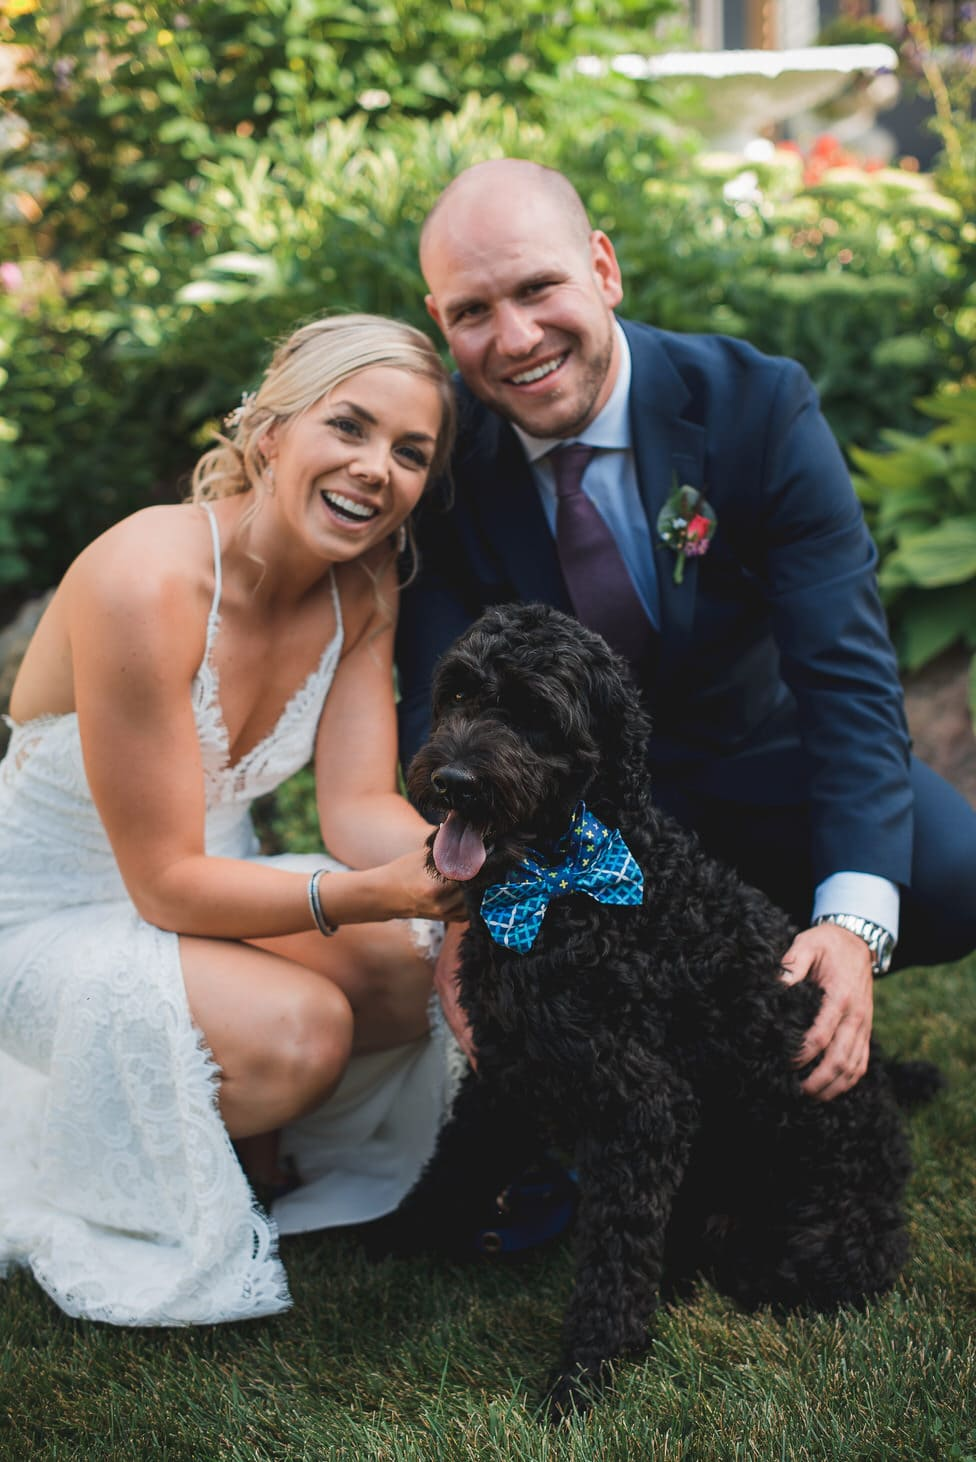 bride and groom pose with their Portuguese water dog in a blue bow tie